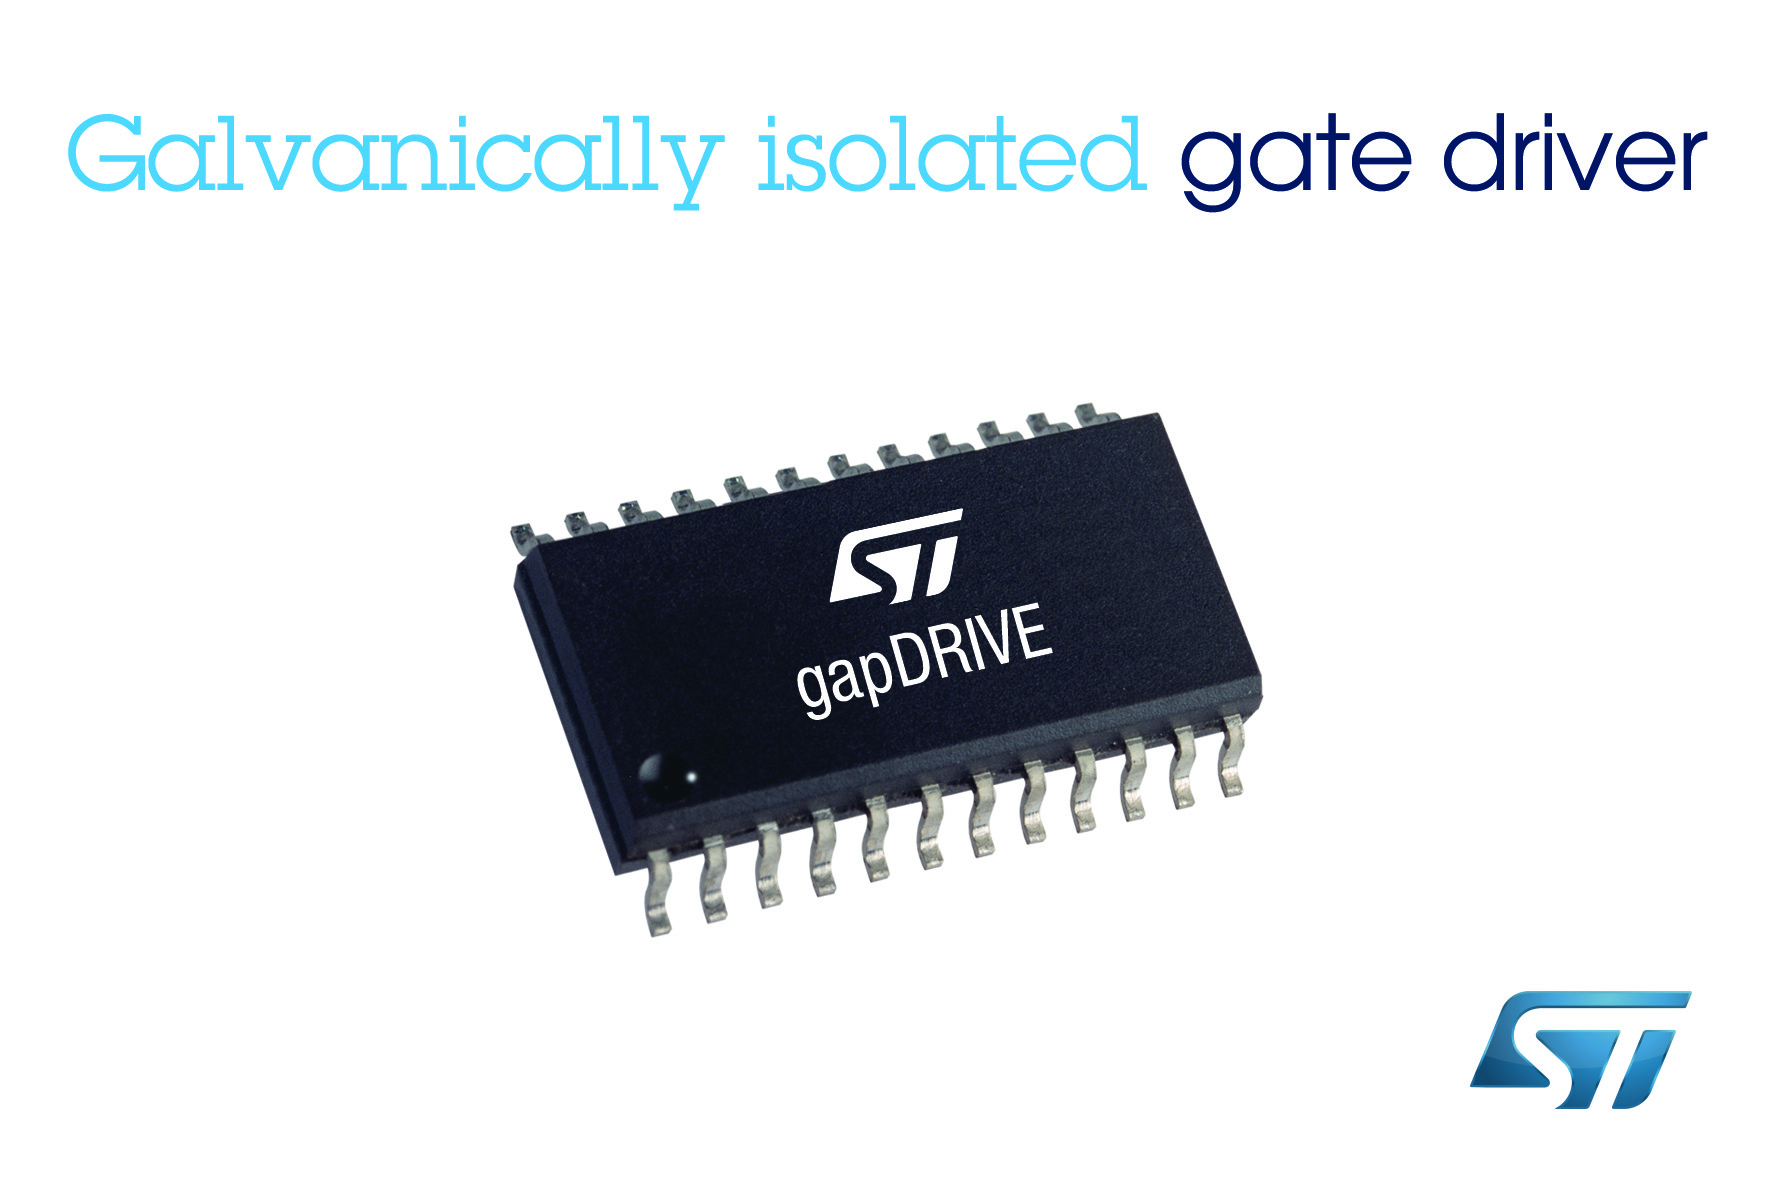 STMicro's gapDRIVE integrated gate drivers offer on-chip galvanic isolation